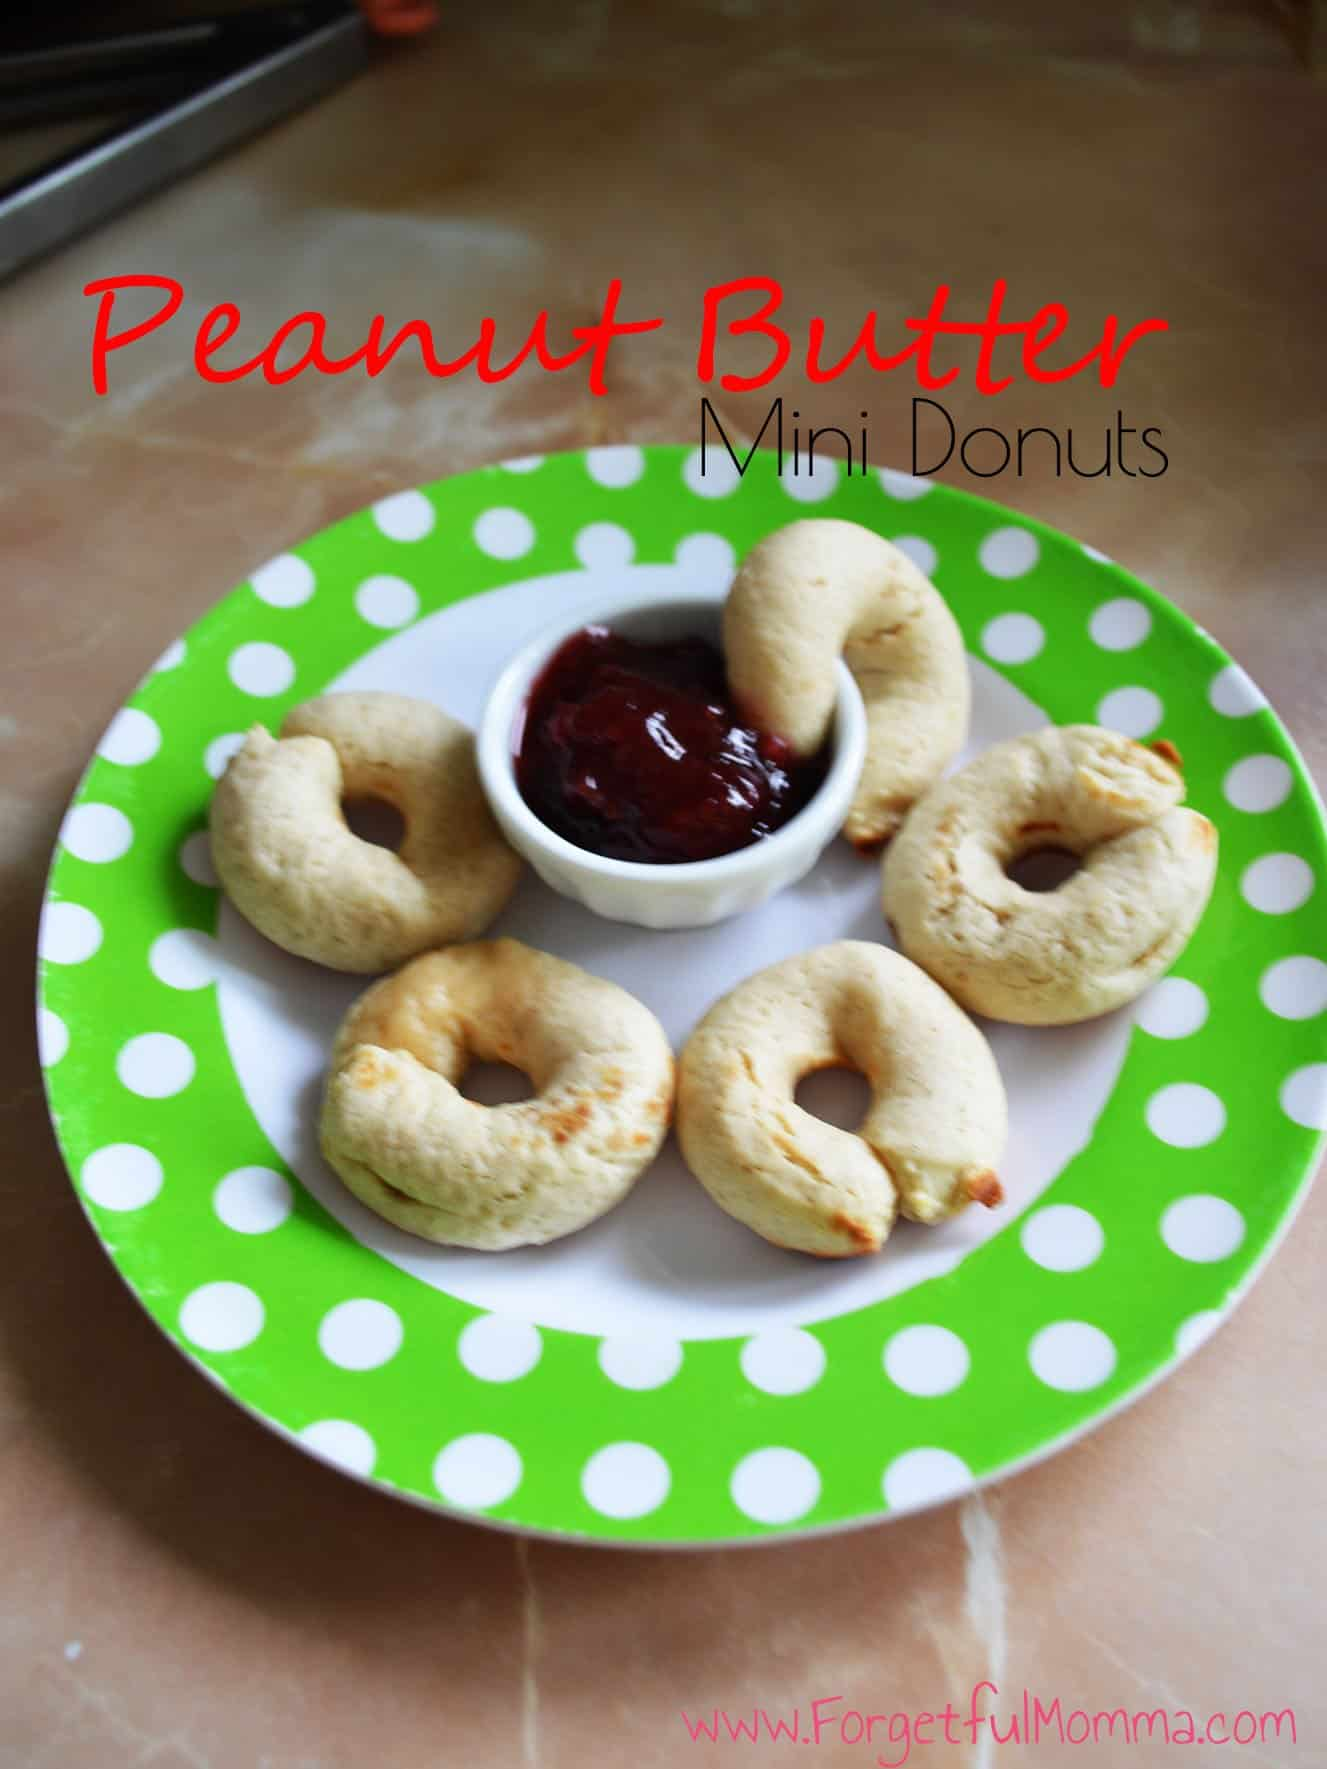 Peanut Butter Mini Donuts 1